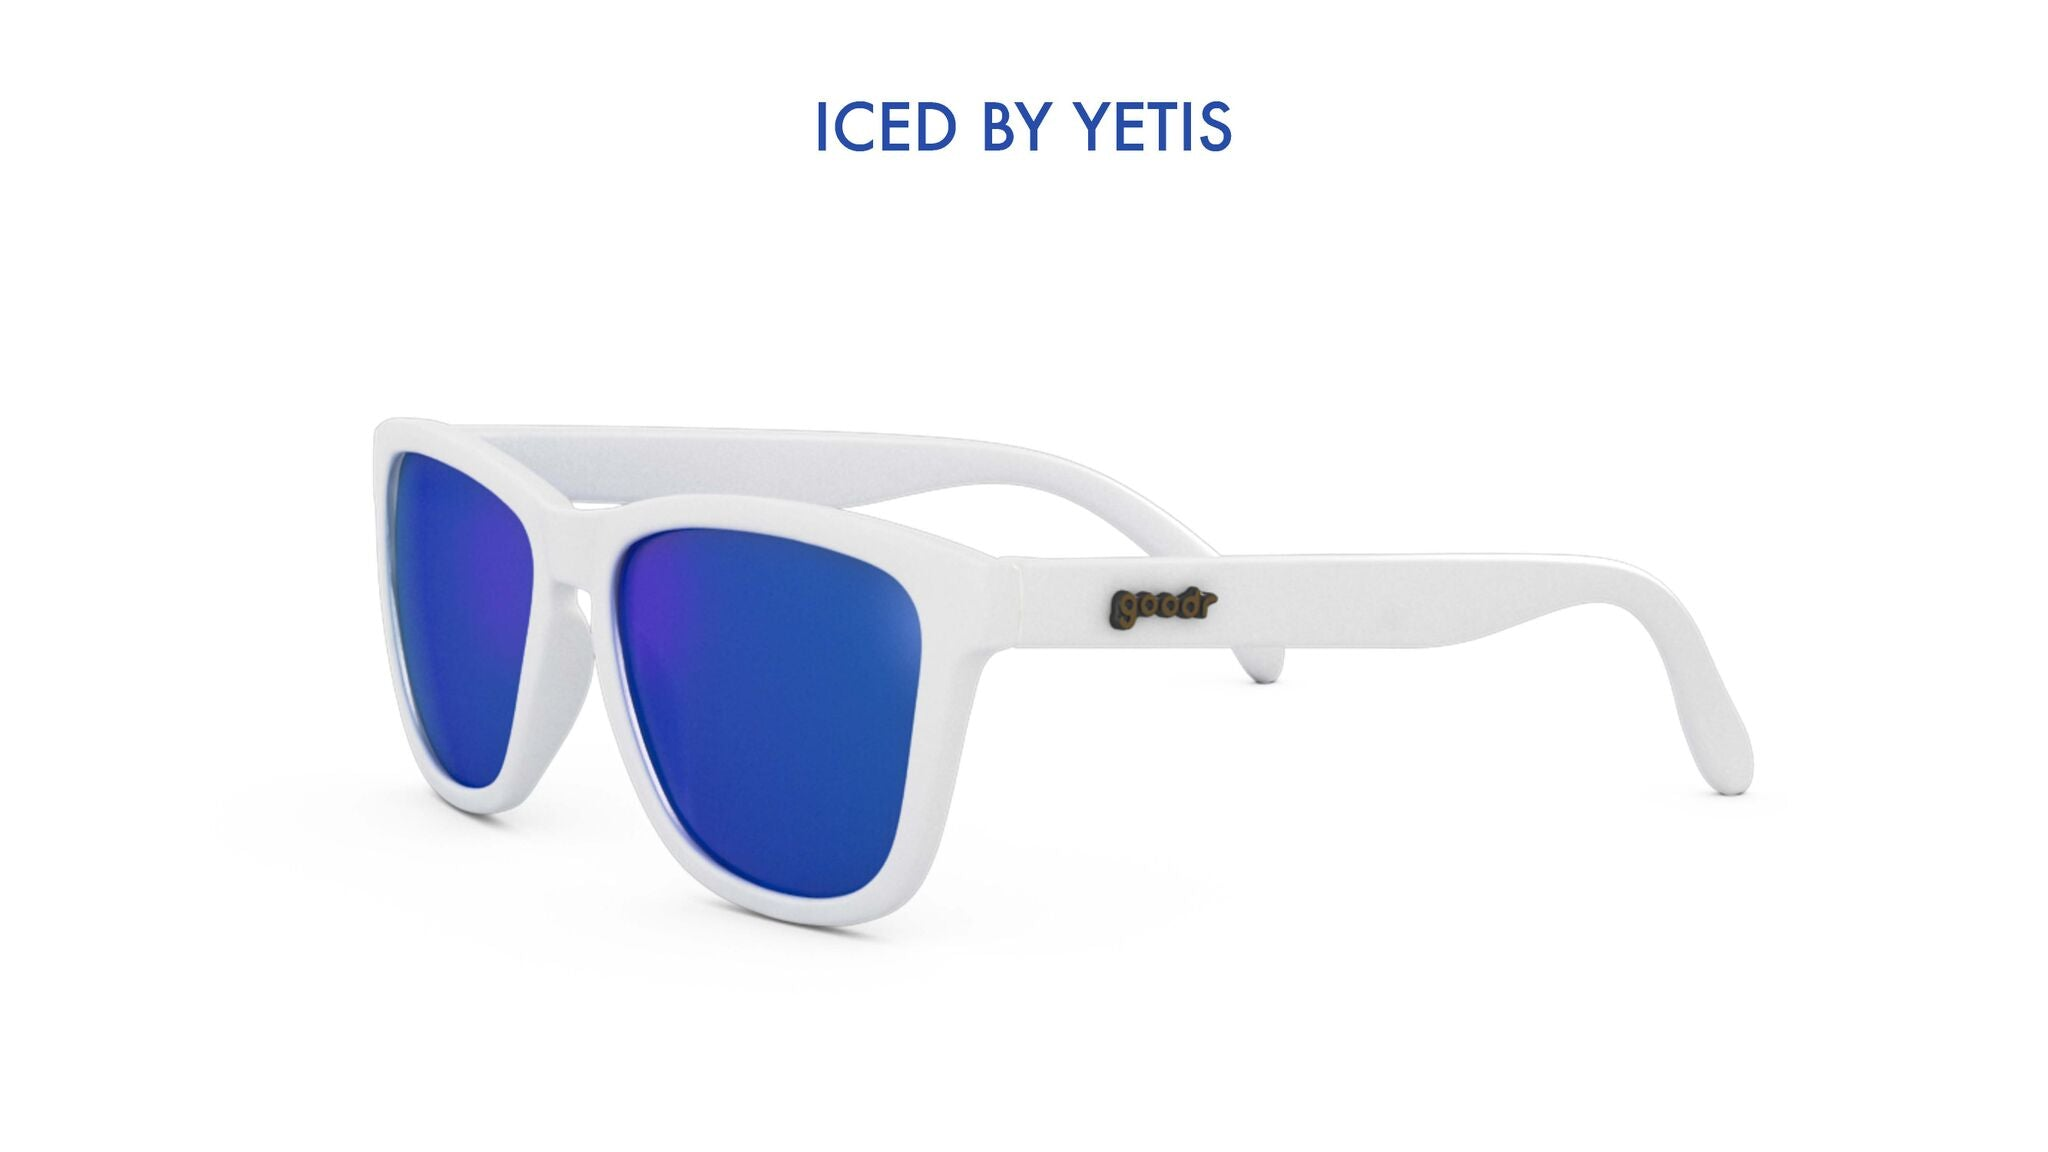 Iced By Yetis